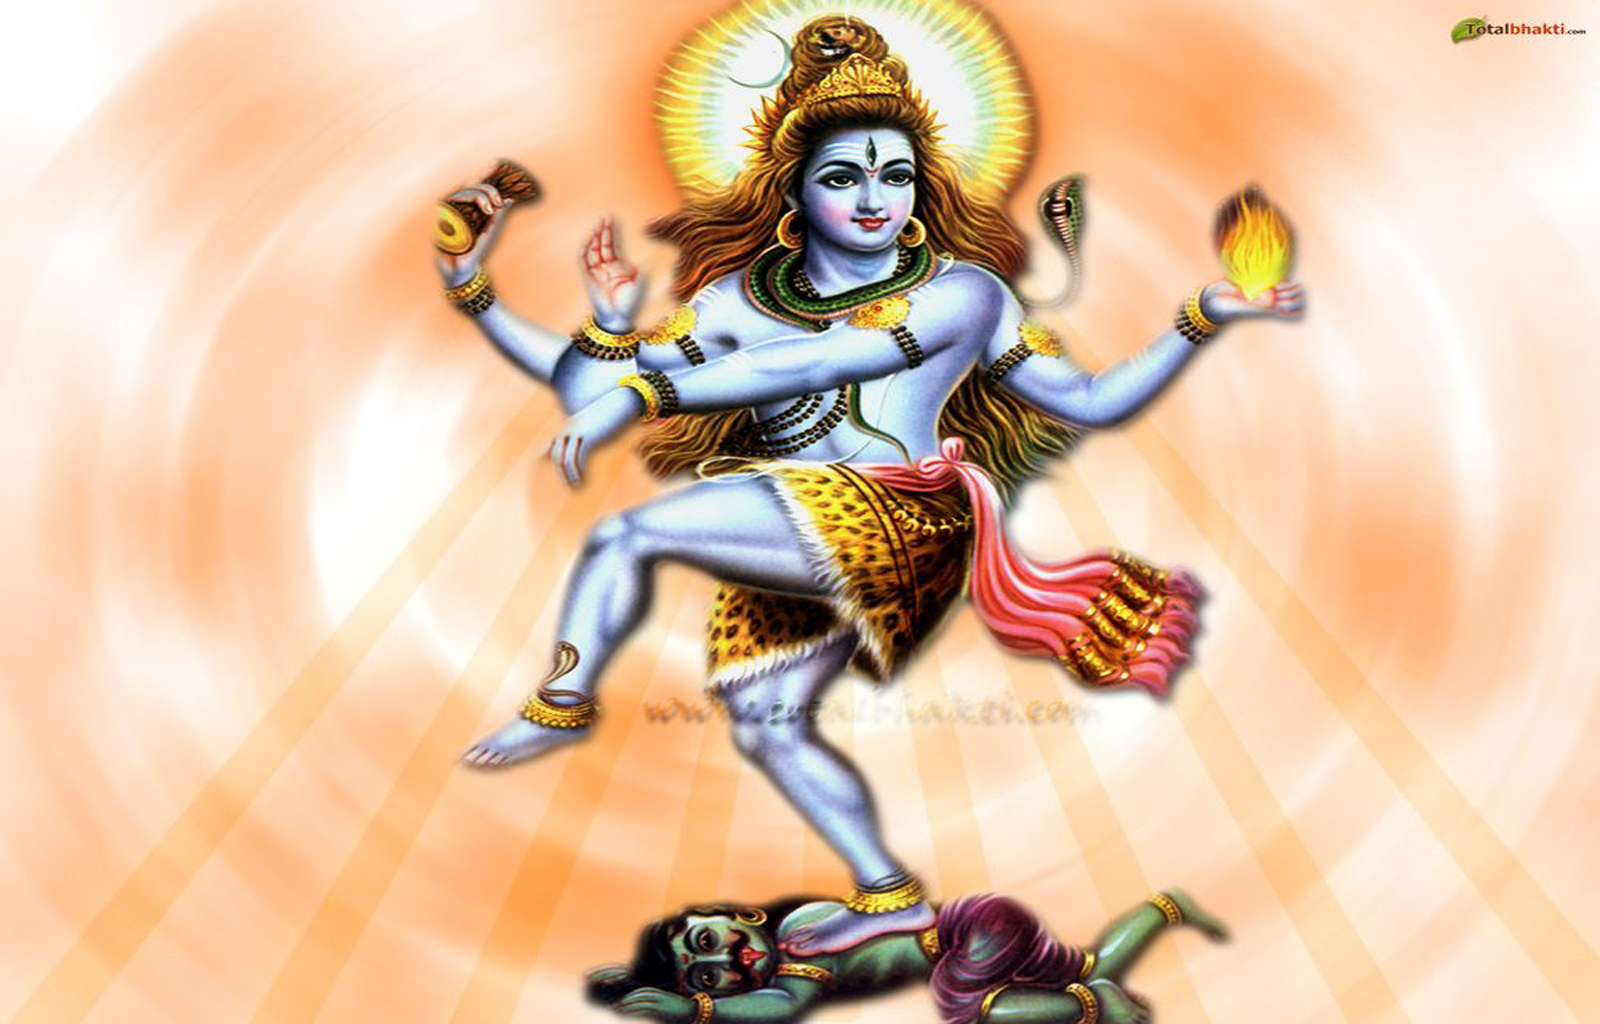 lord shiva dancing wallpapers wwwpixsharkcom images